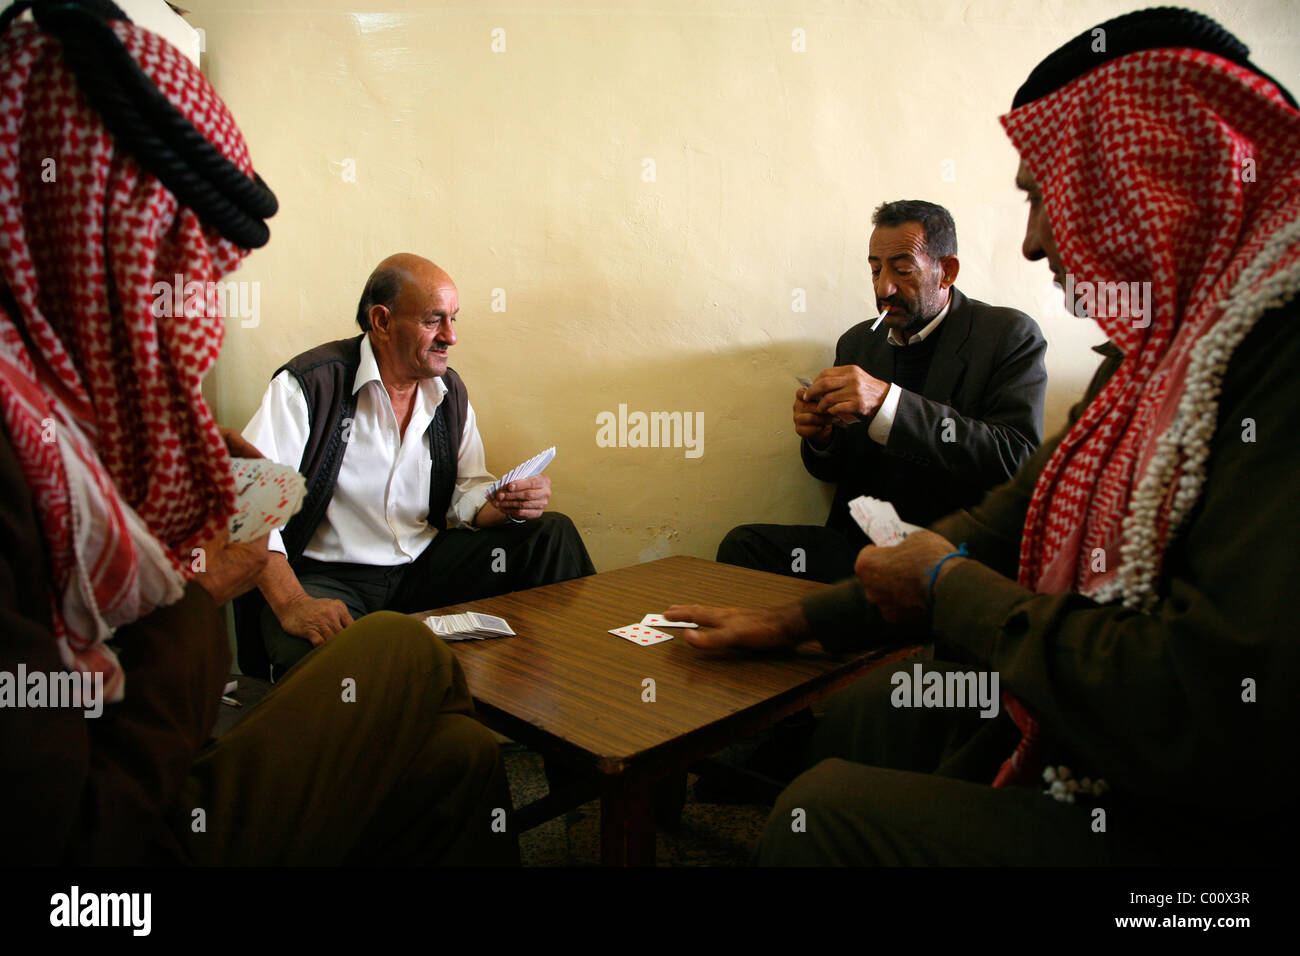 Men playing cards at a traditional cafe on Mayden street, Salt, Jordan. - Stock Image